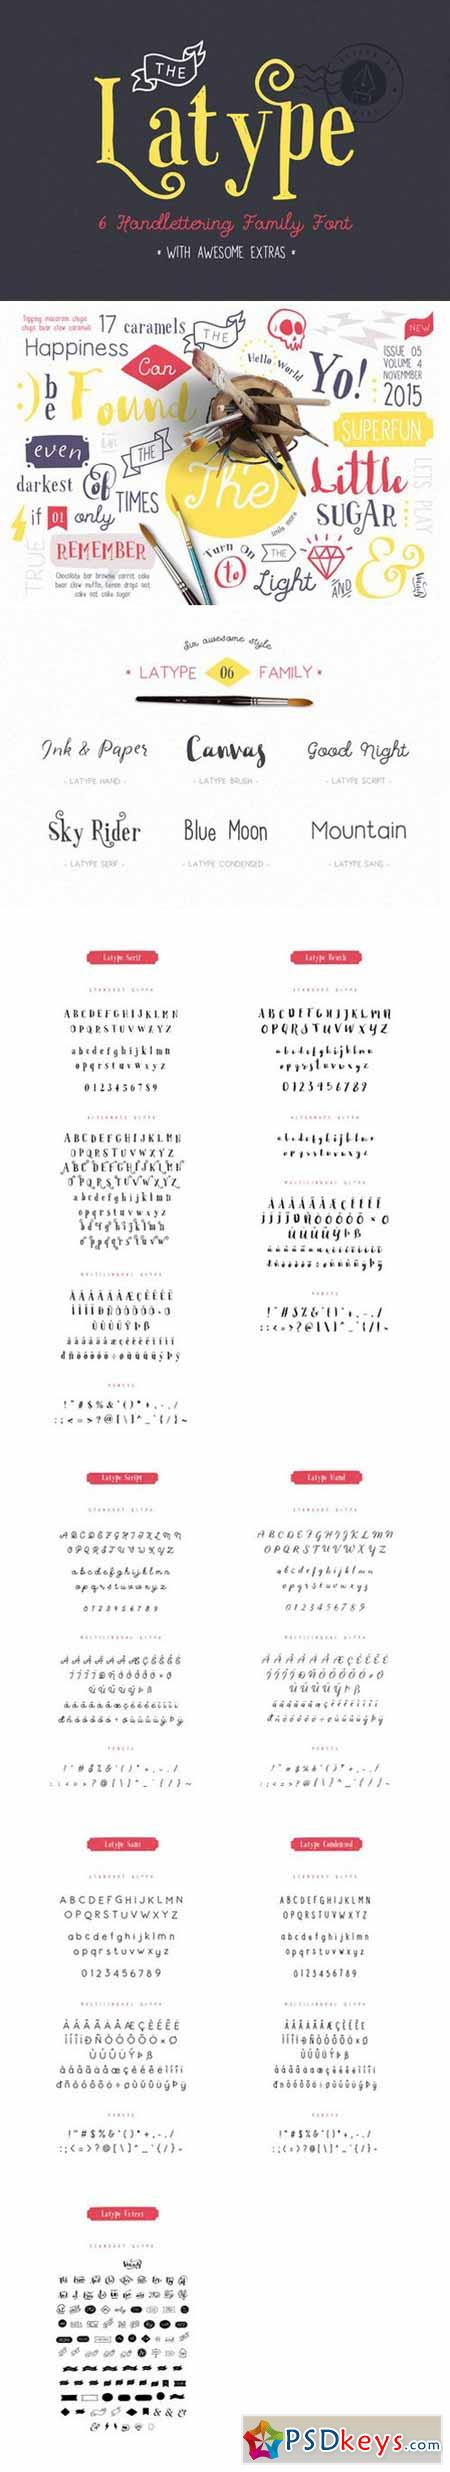 Latype Font Family 326464